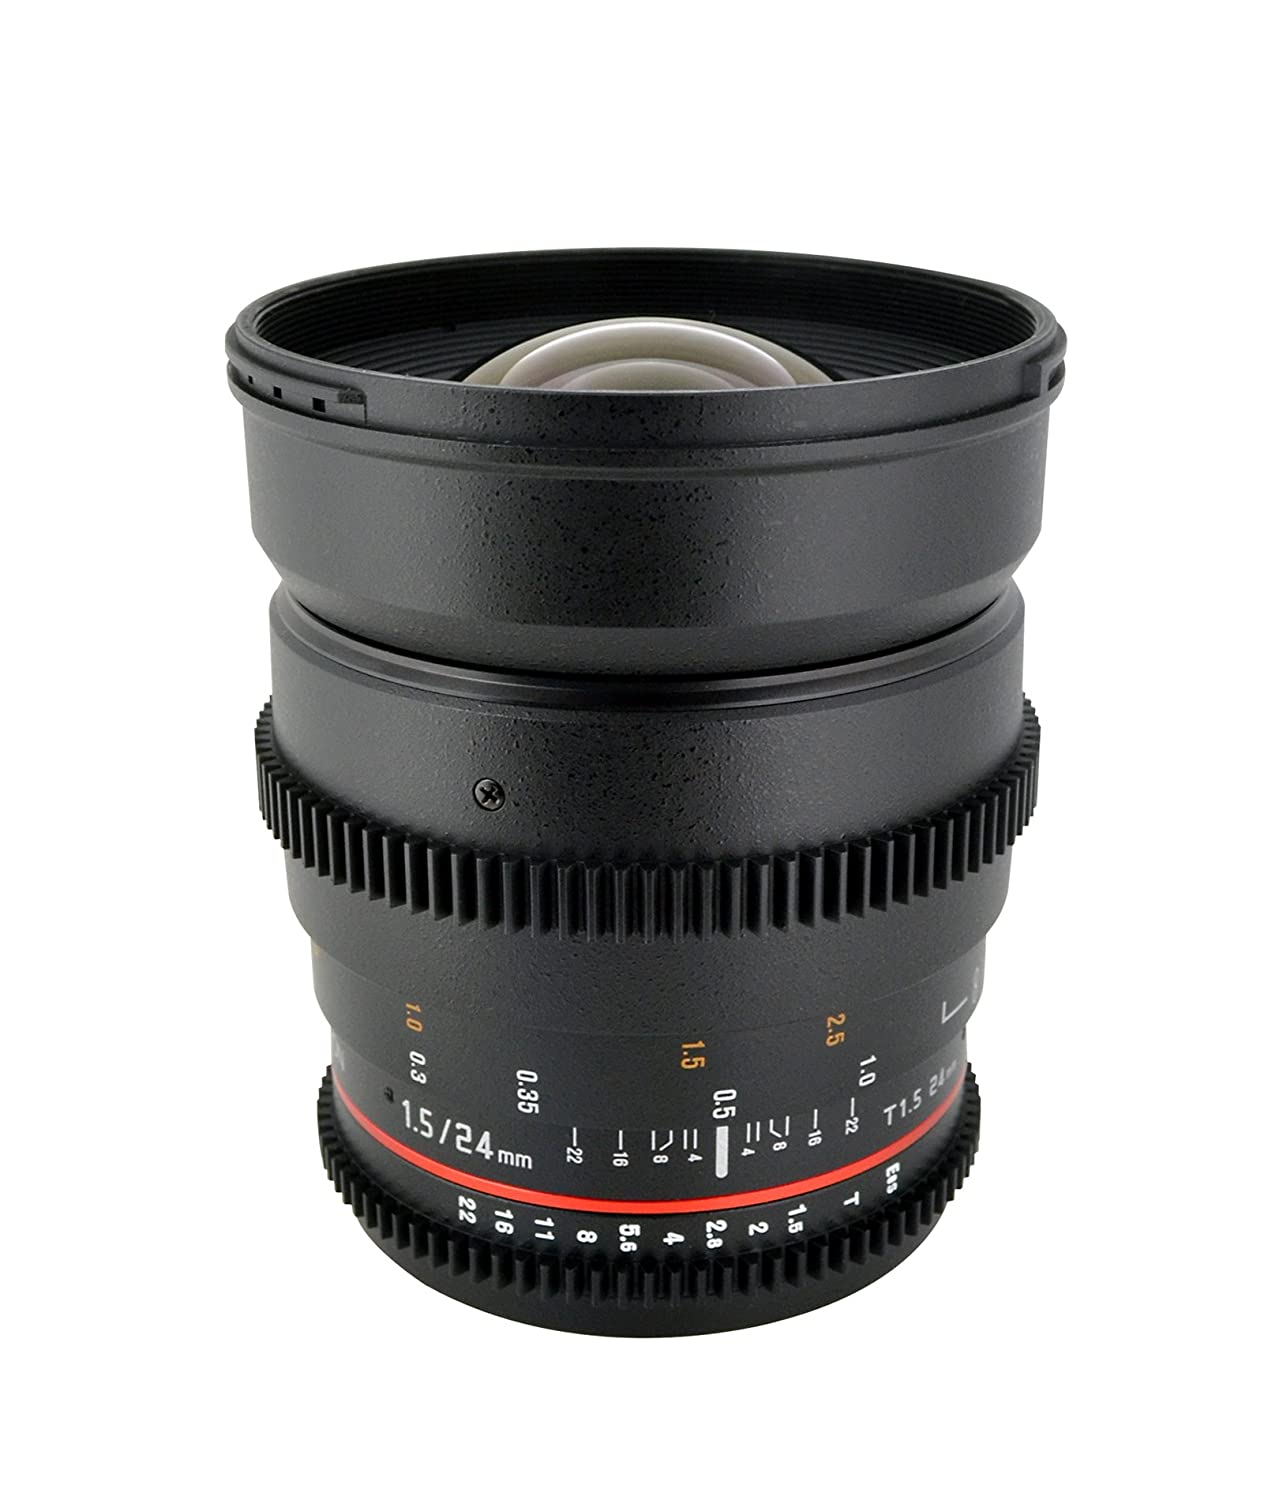 Rokinon Cine CV24M-N 24mm T1.5 Cine Wide Angle Lens for Nikon with De-Clicked Aperture and Follow Focus Compatibility 24-24mm Wide-Angle Lens